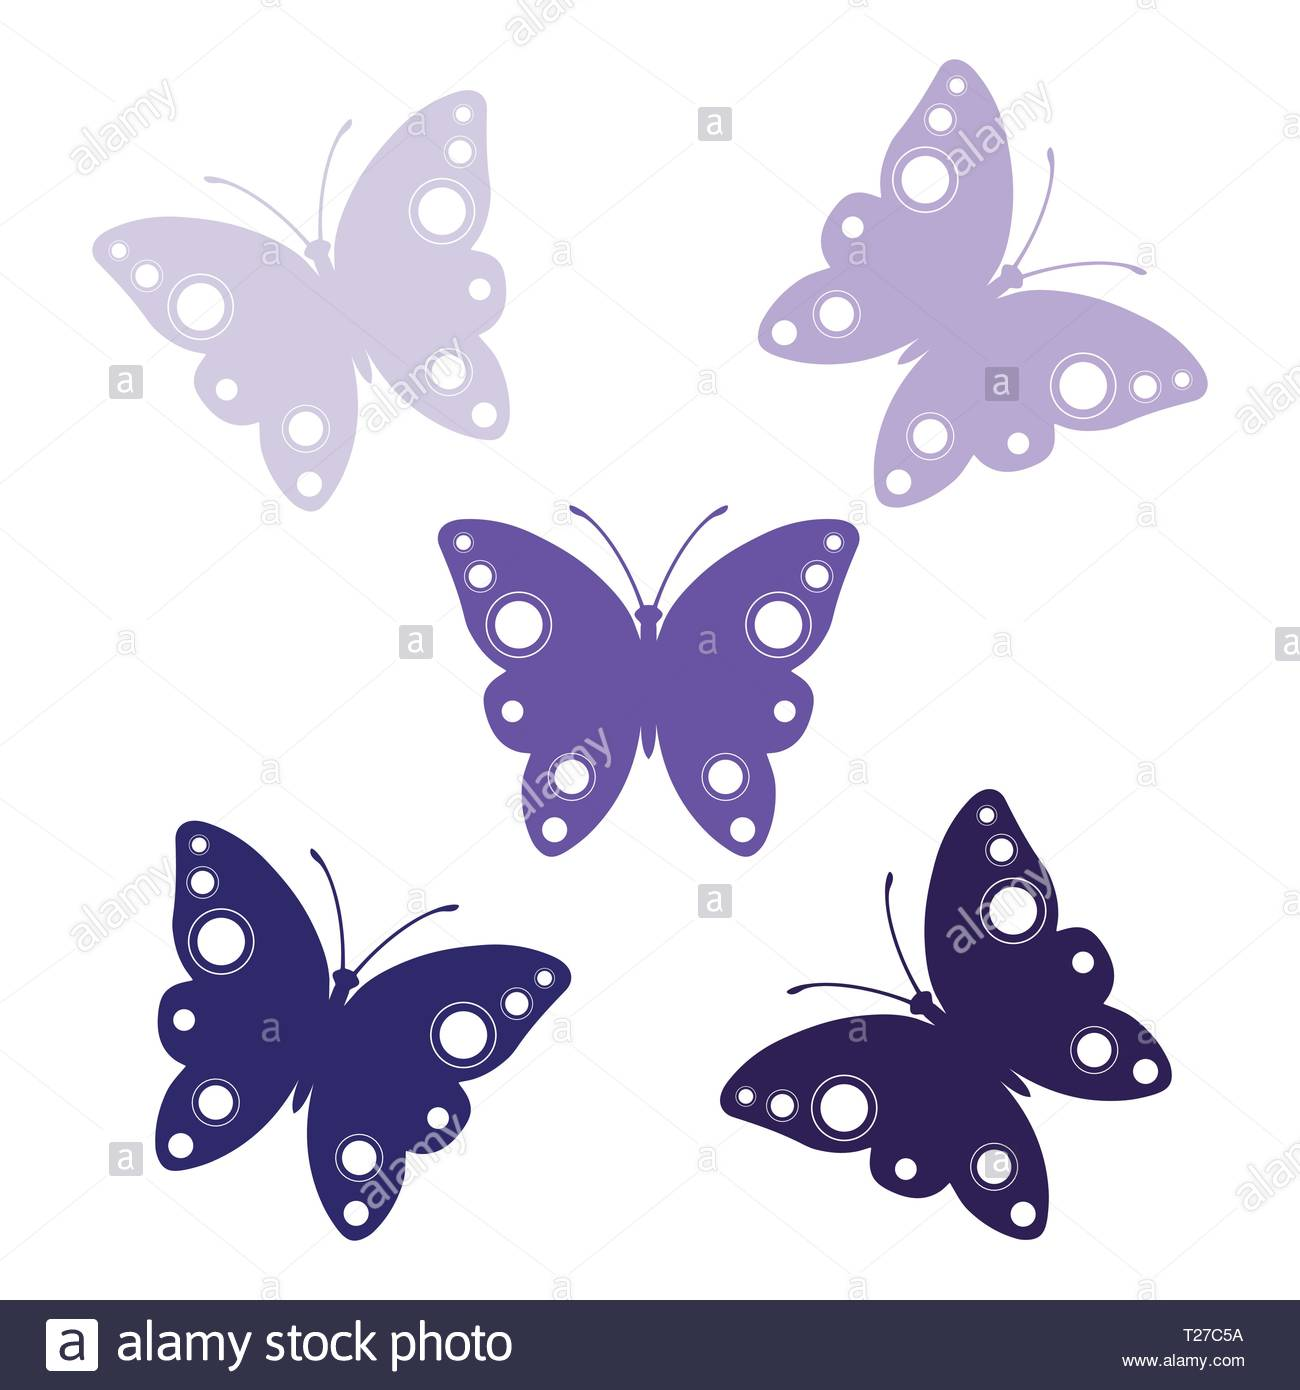 Butterfly clip art lilac butterflies set vector butterfly logo icon stock image